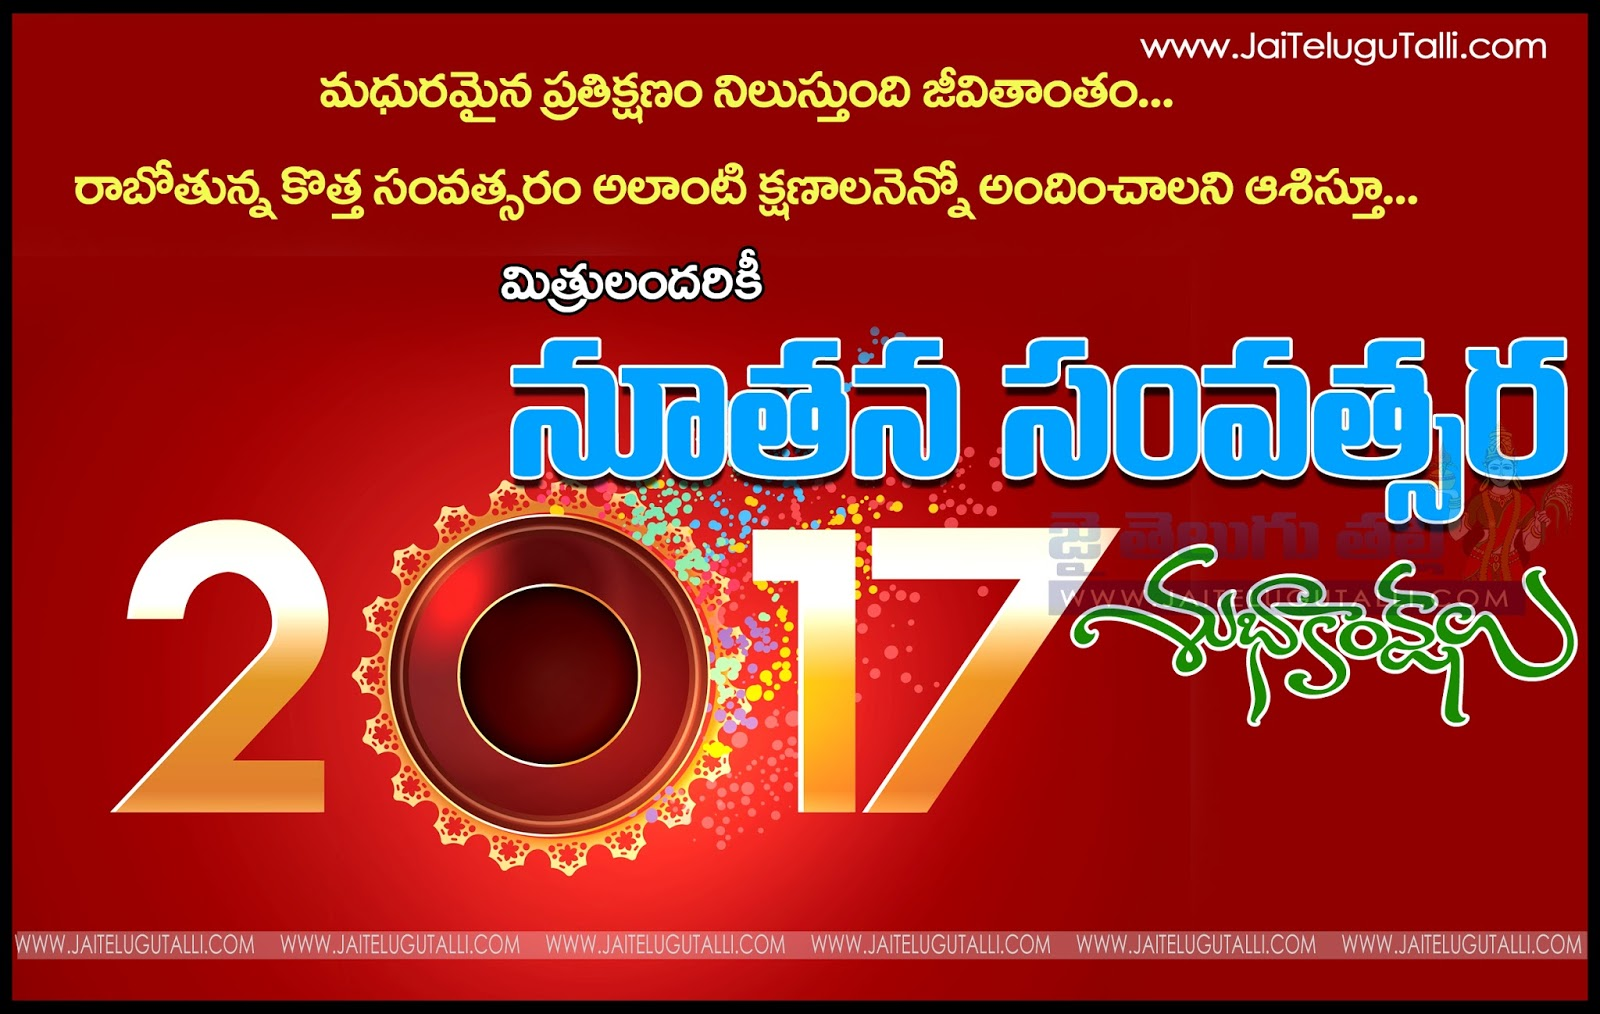 telugu new year greetings to you wallpapers happy new year jpg 1600x1014 2017 wishes wallpaper happy